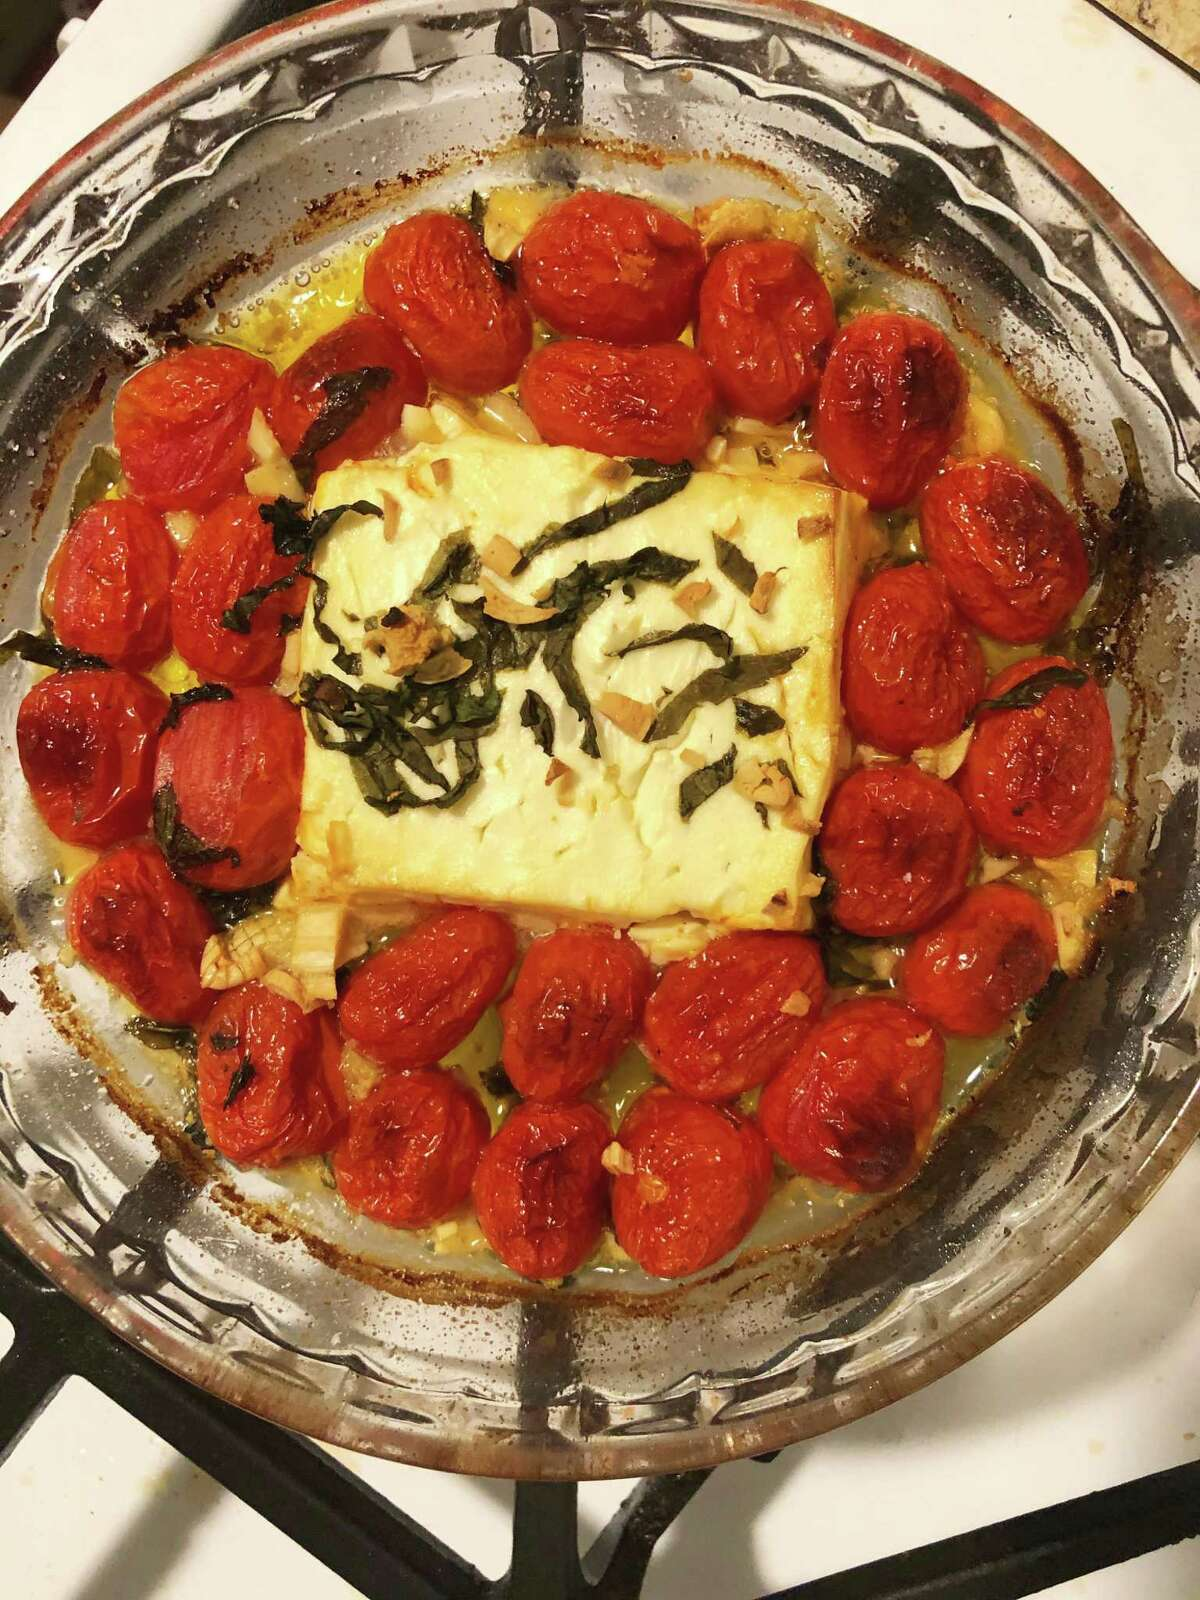 TikTok's tomato feta pasta is taking the app by storm. Hearst Connecticut Media's features reporter Sarajane Sullivan put her own spin on the dish with this recipe.